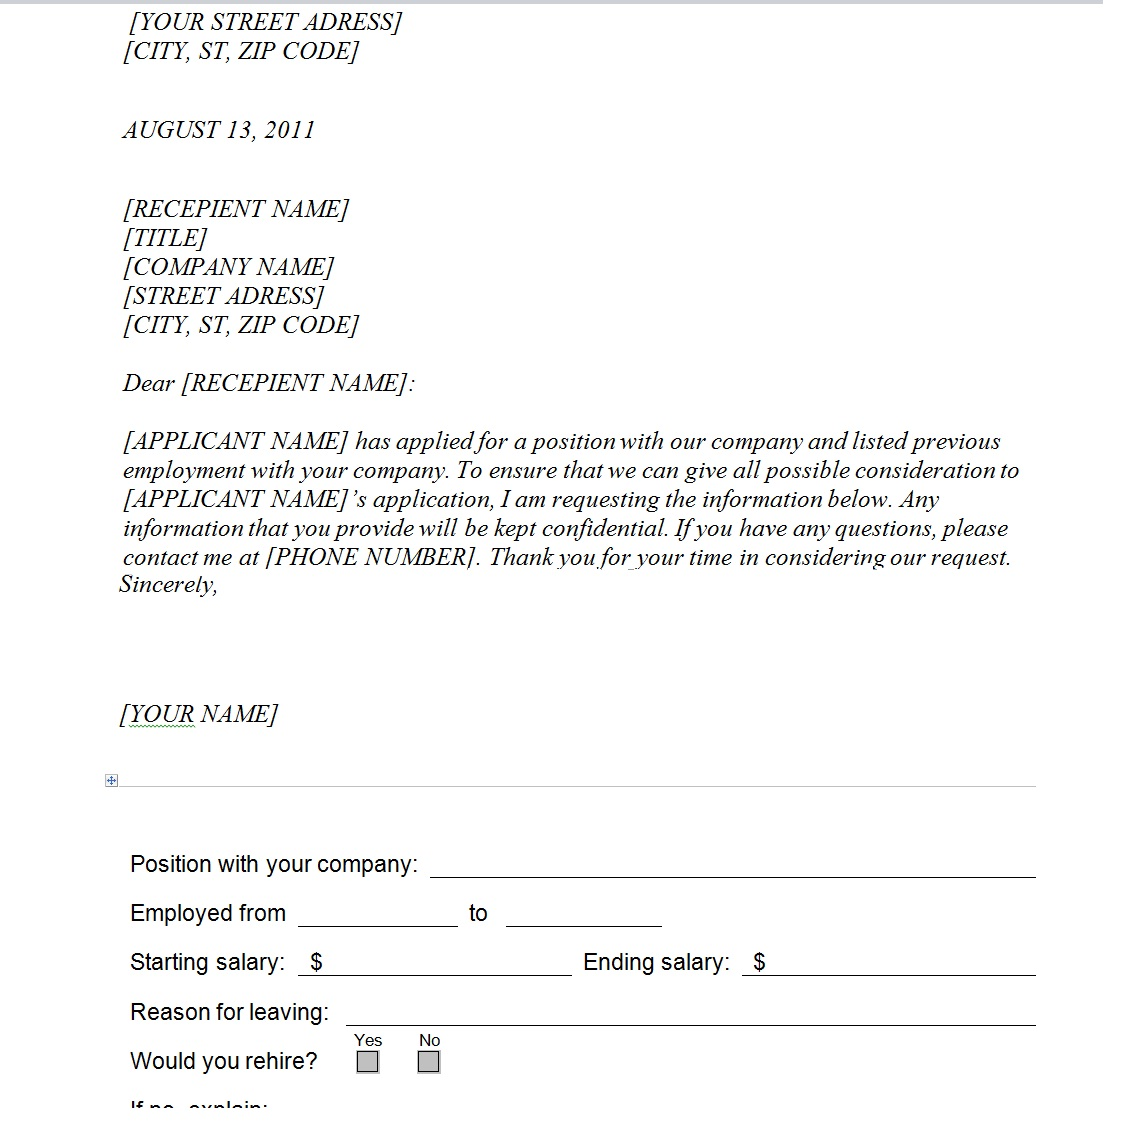 Doc662777 Examples of Employment Verification Letters 40 – Examples of Employment Verification Letter